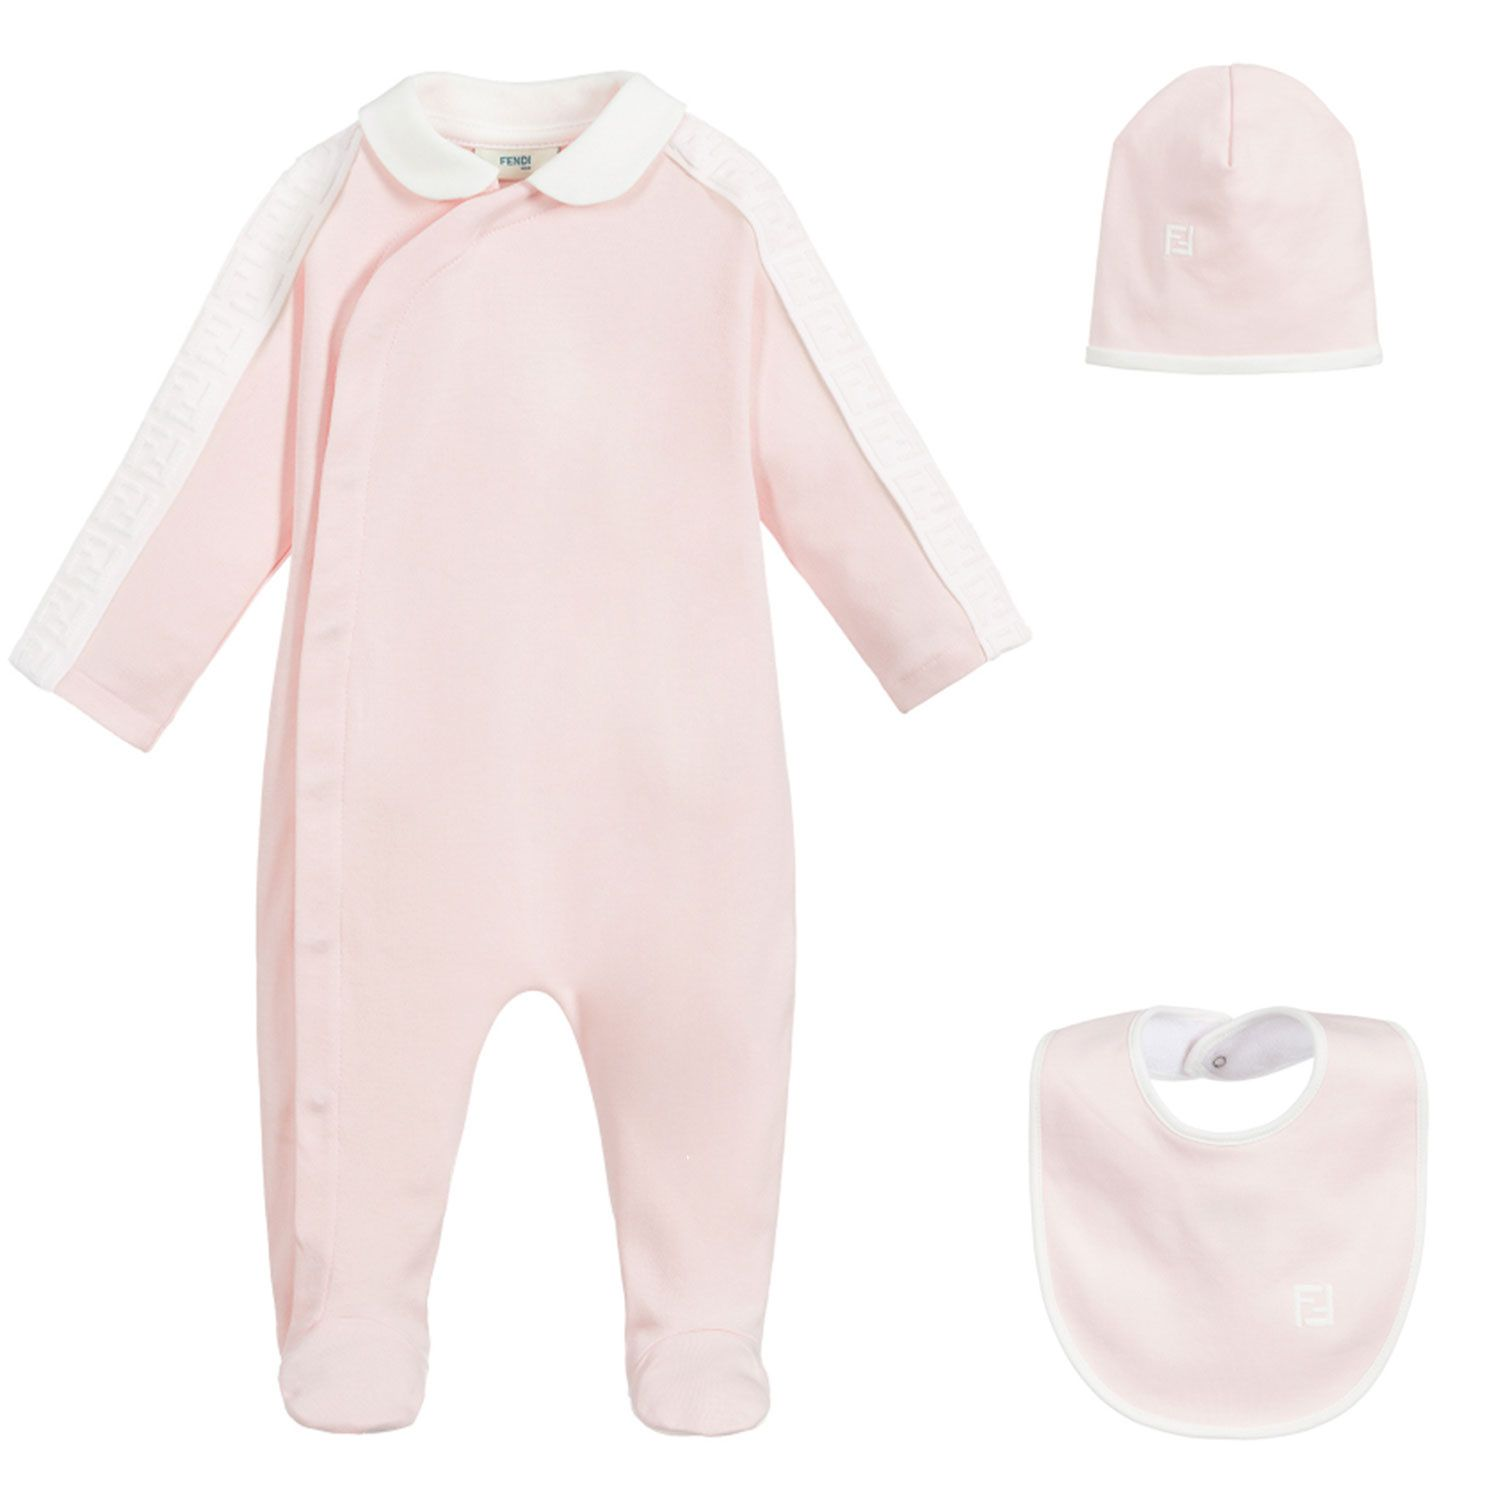 Picture of Fendi BUK062 baby playsuit light pink